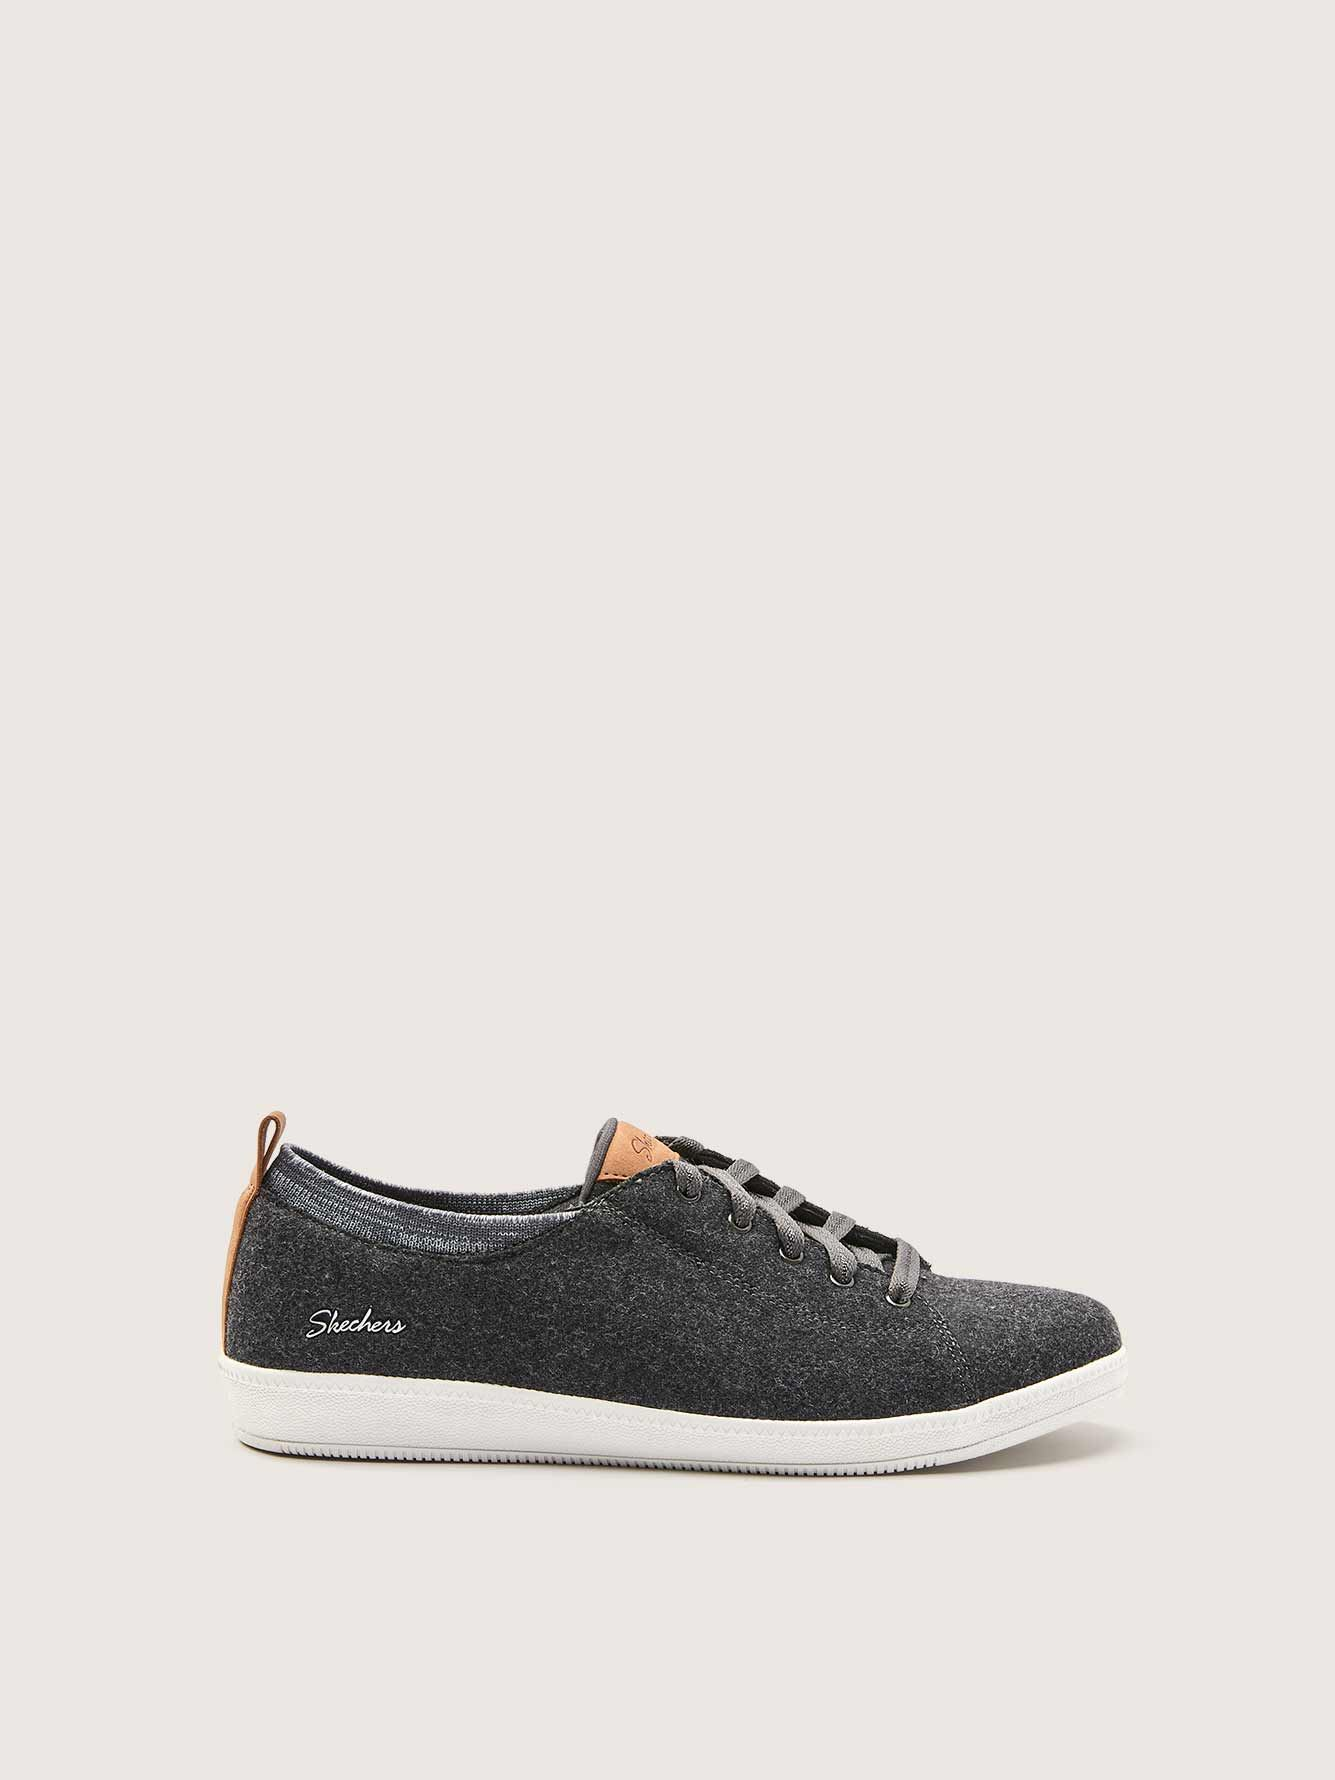 Wide Width Lace Up Slip On Madison Shoes - Skechers